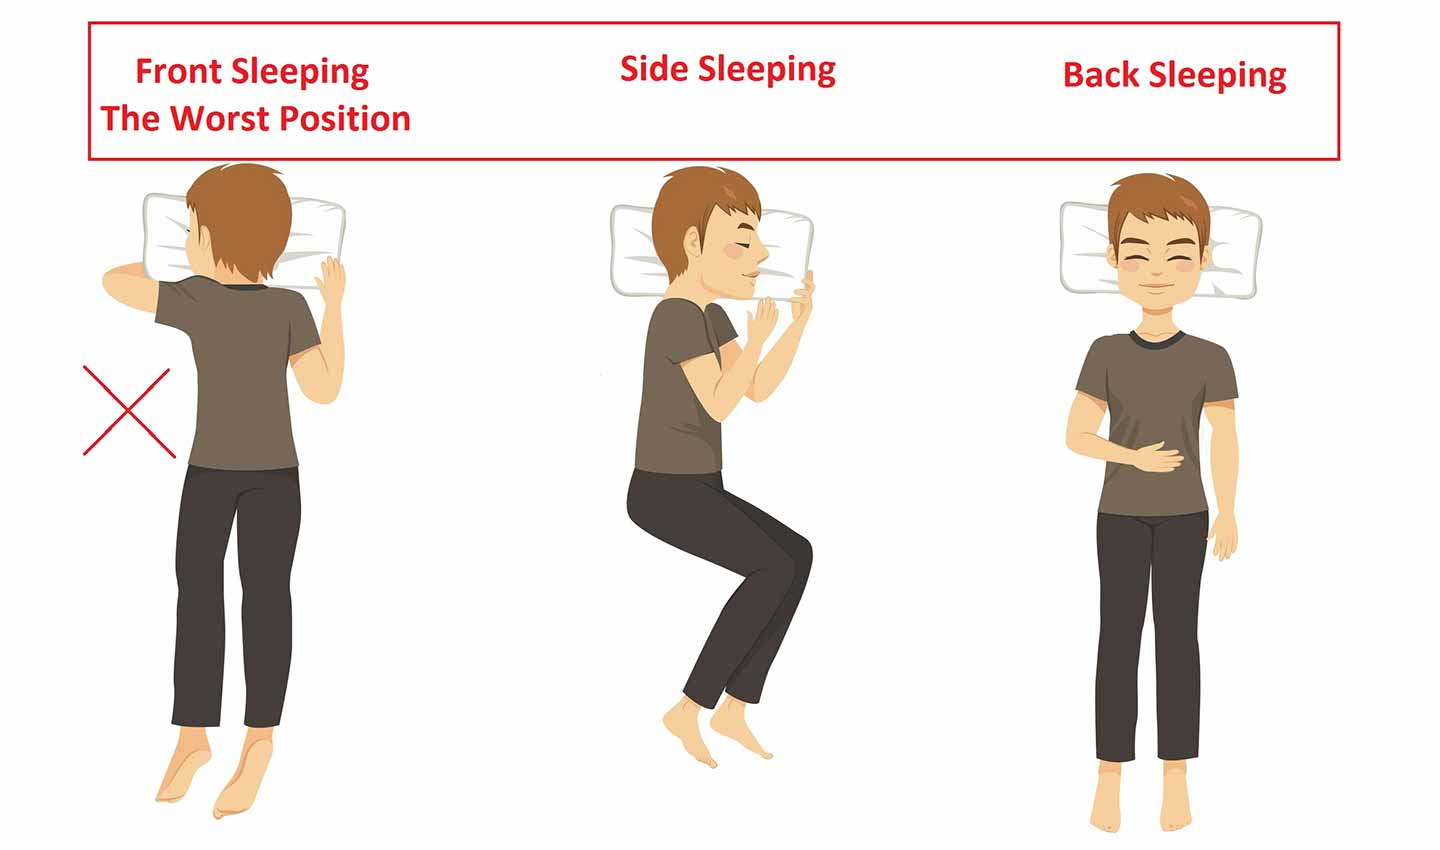 Tempurpedic Vs Sleep Number >> What is The Best and Worst Sleeping Position? (Important ...